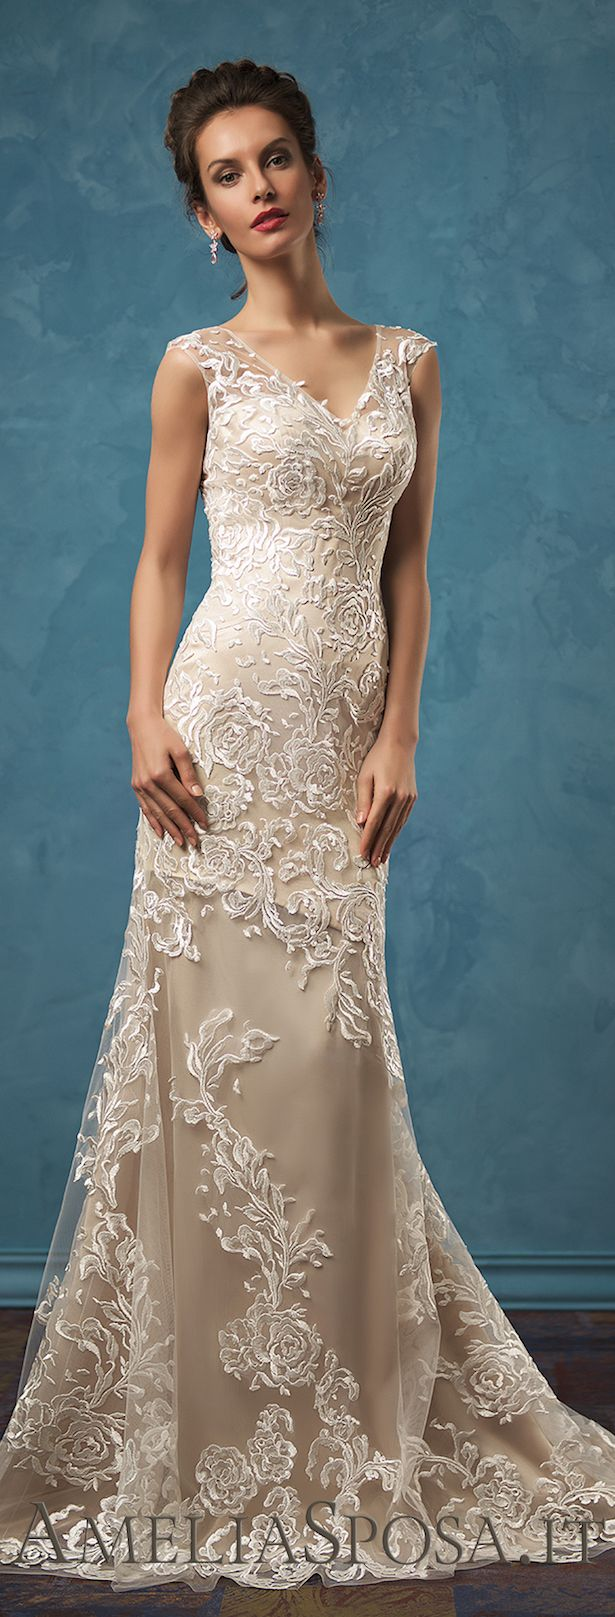 449 best All About the Dress images on Pinterest | Prom dresses ...